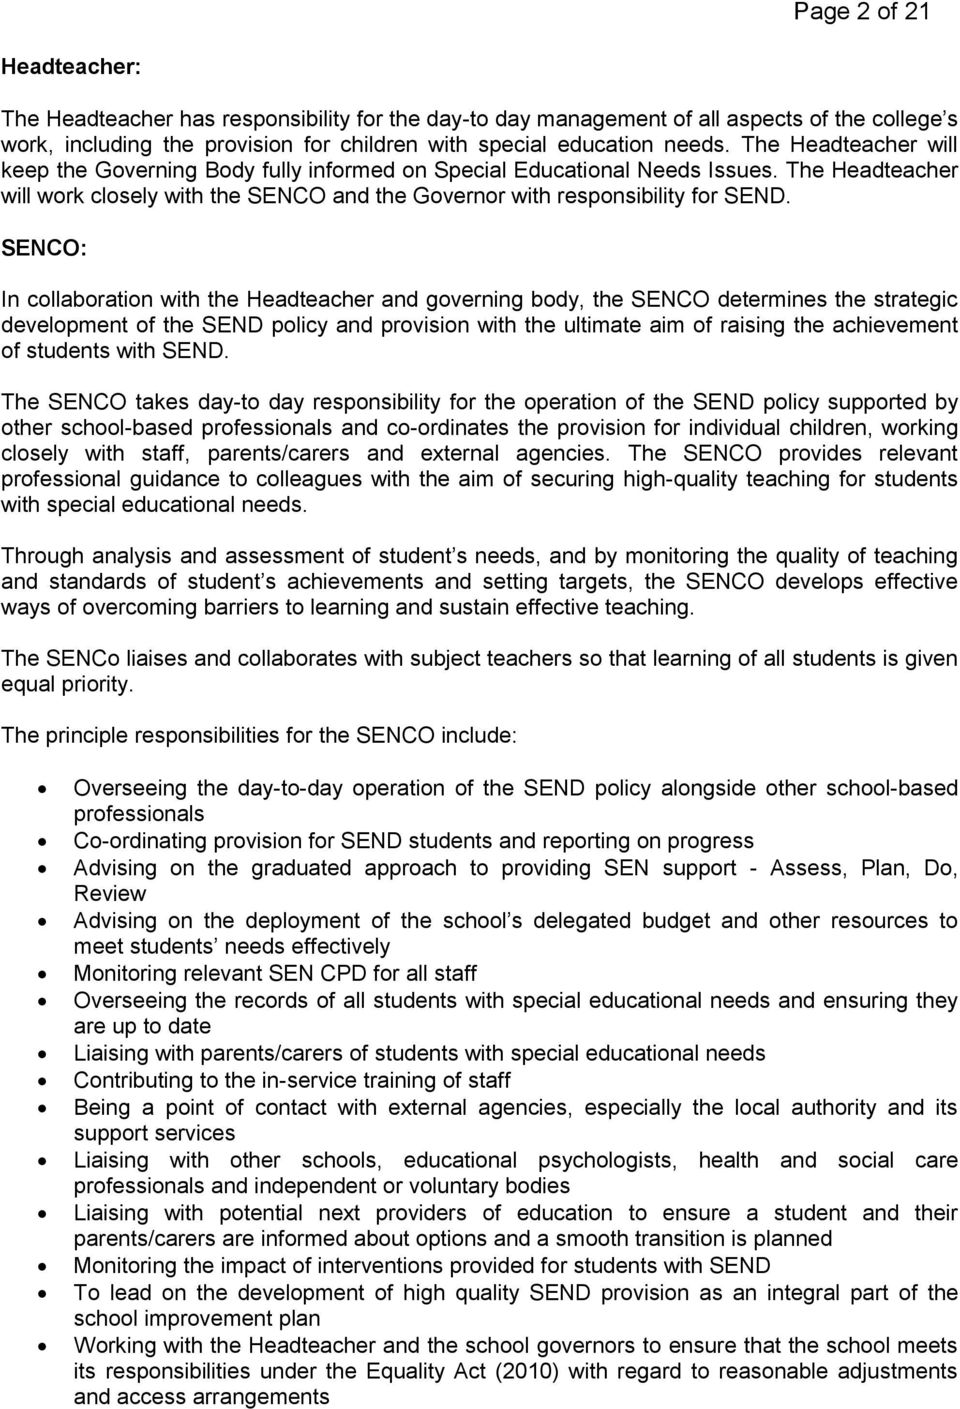 SENCO: In collaboration with the Headteacher and governing body, the SENCO determines the strategic development of the SEND policy and provision with the ultimate aim of raising the achievement of